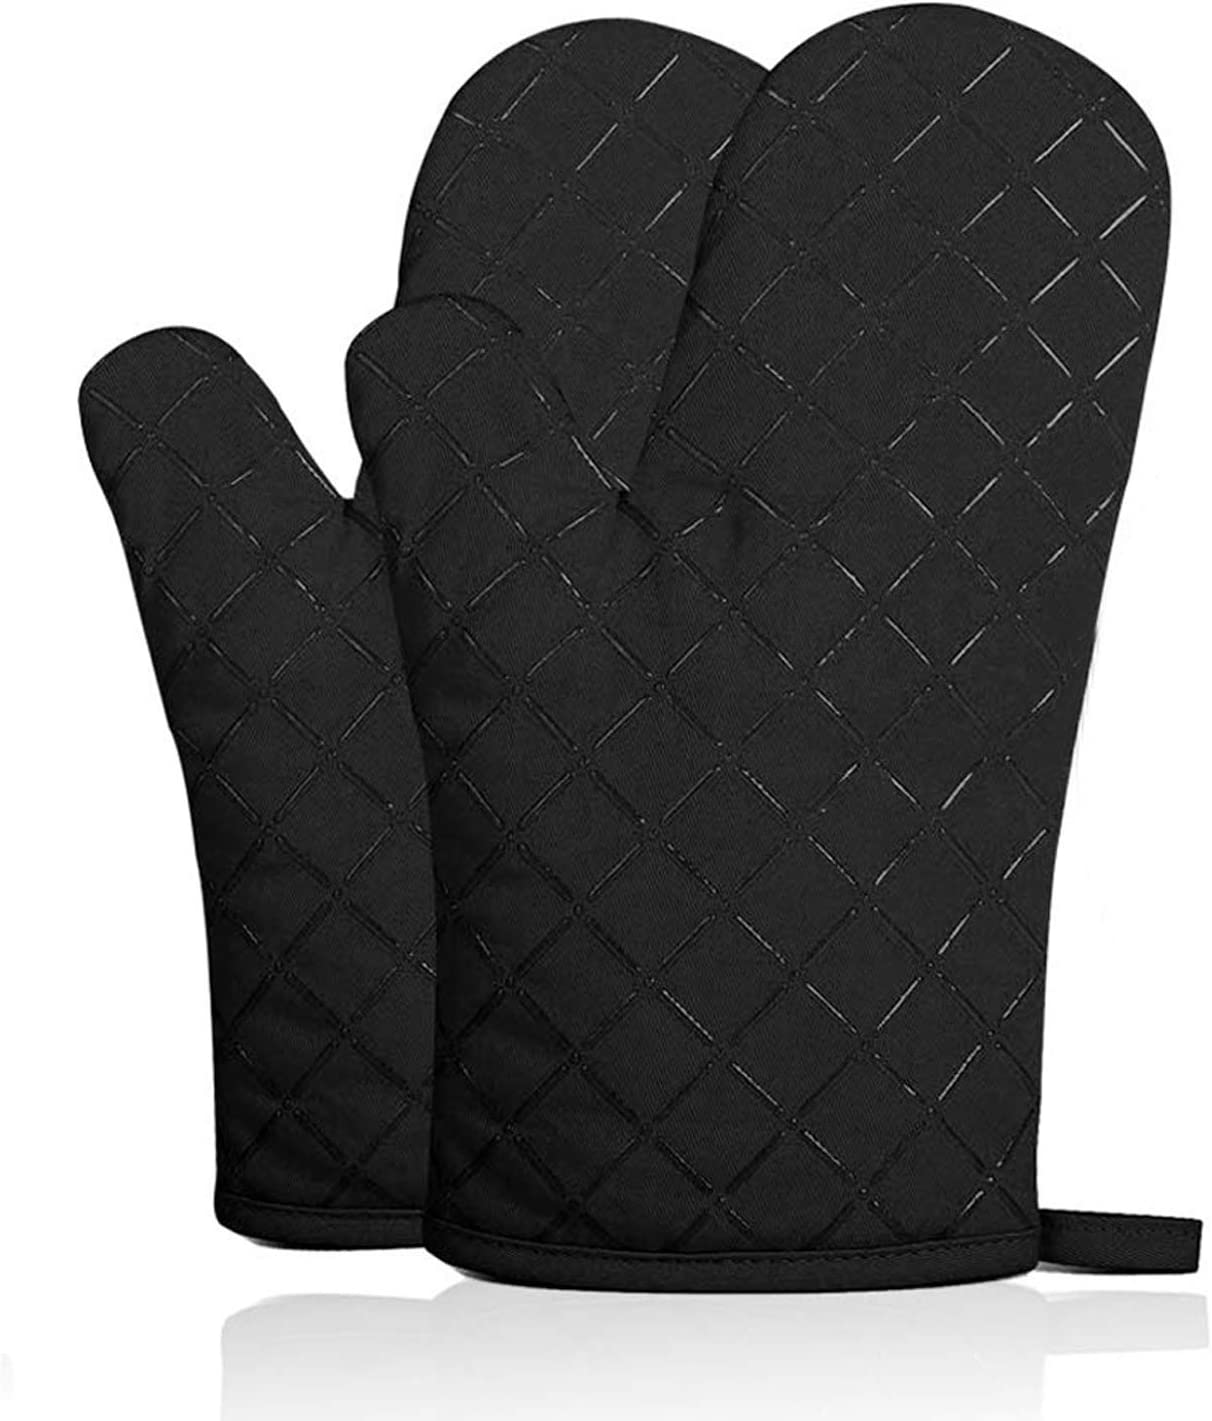 Emoly 2020 Cotton Oven Mitts with Silicone Heat Resistant Quilted Microwave Gloves for Baking, Black